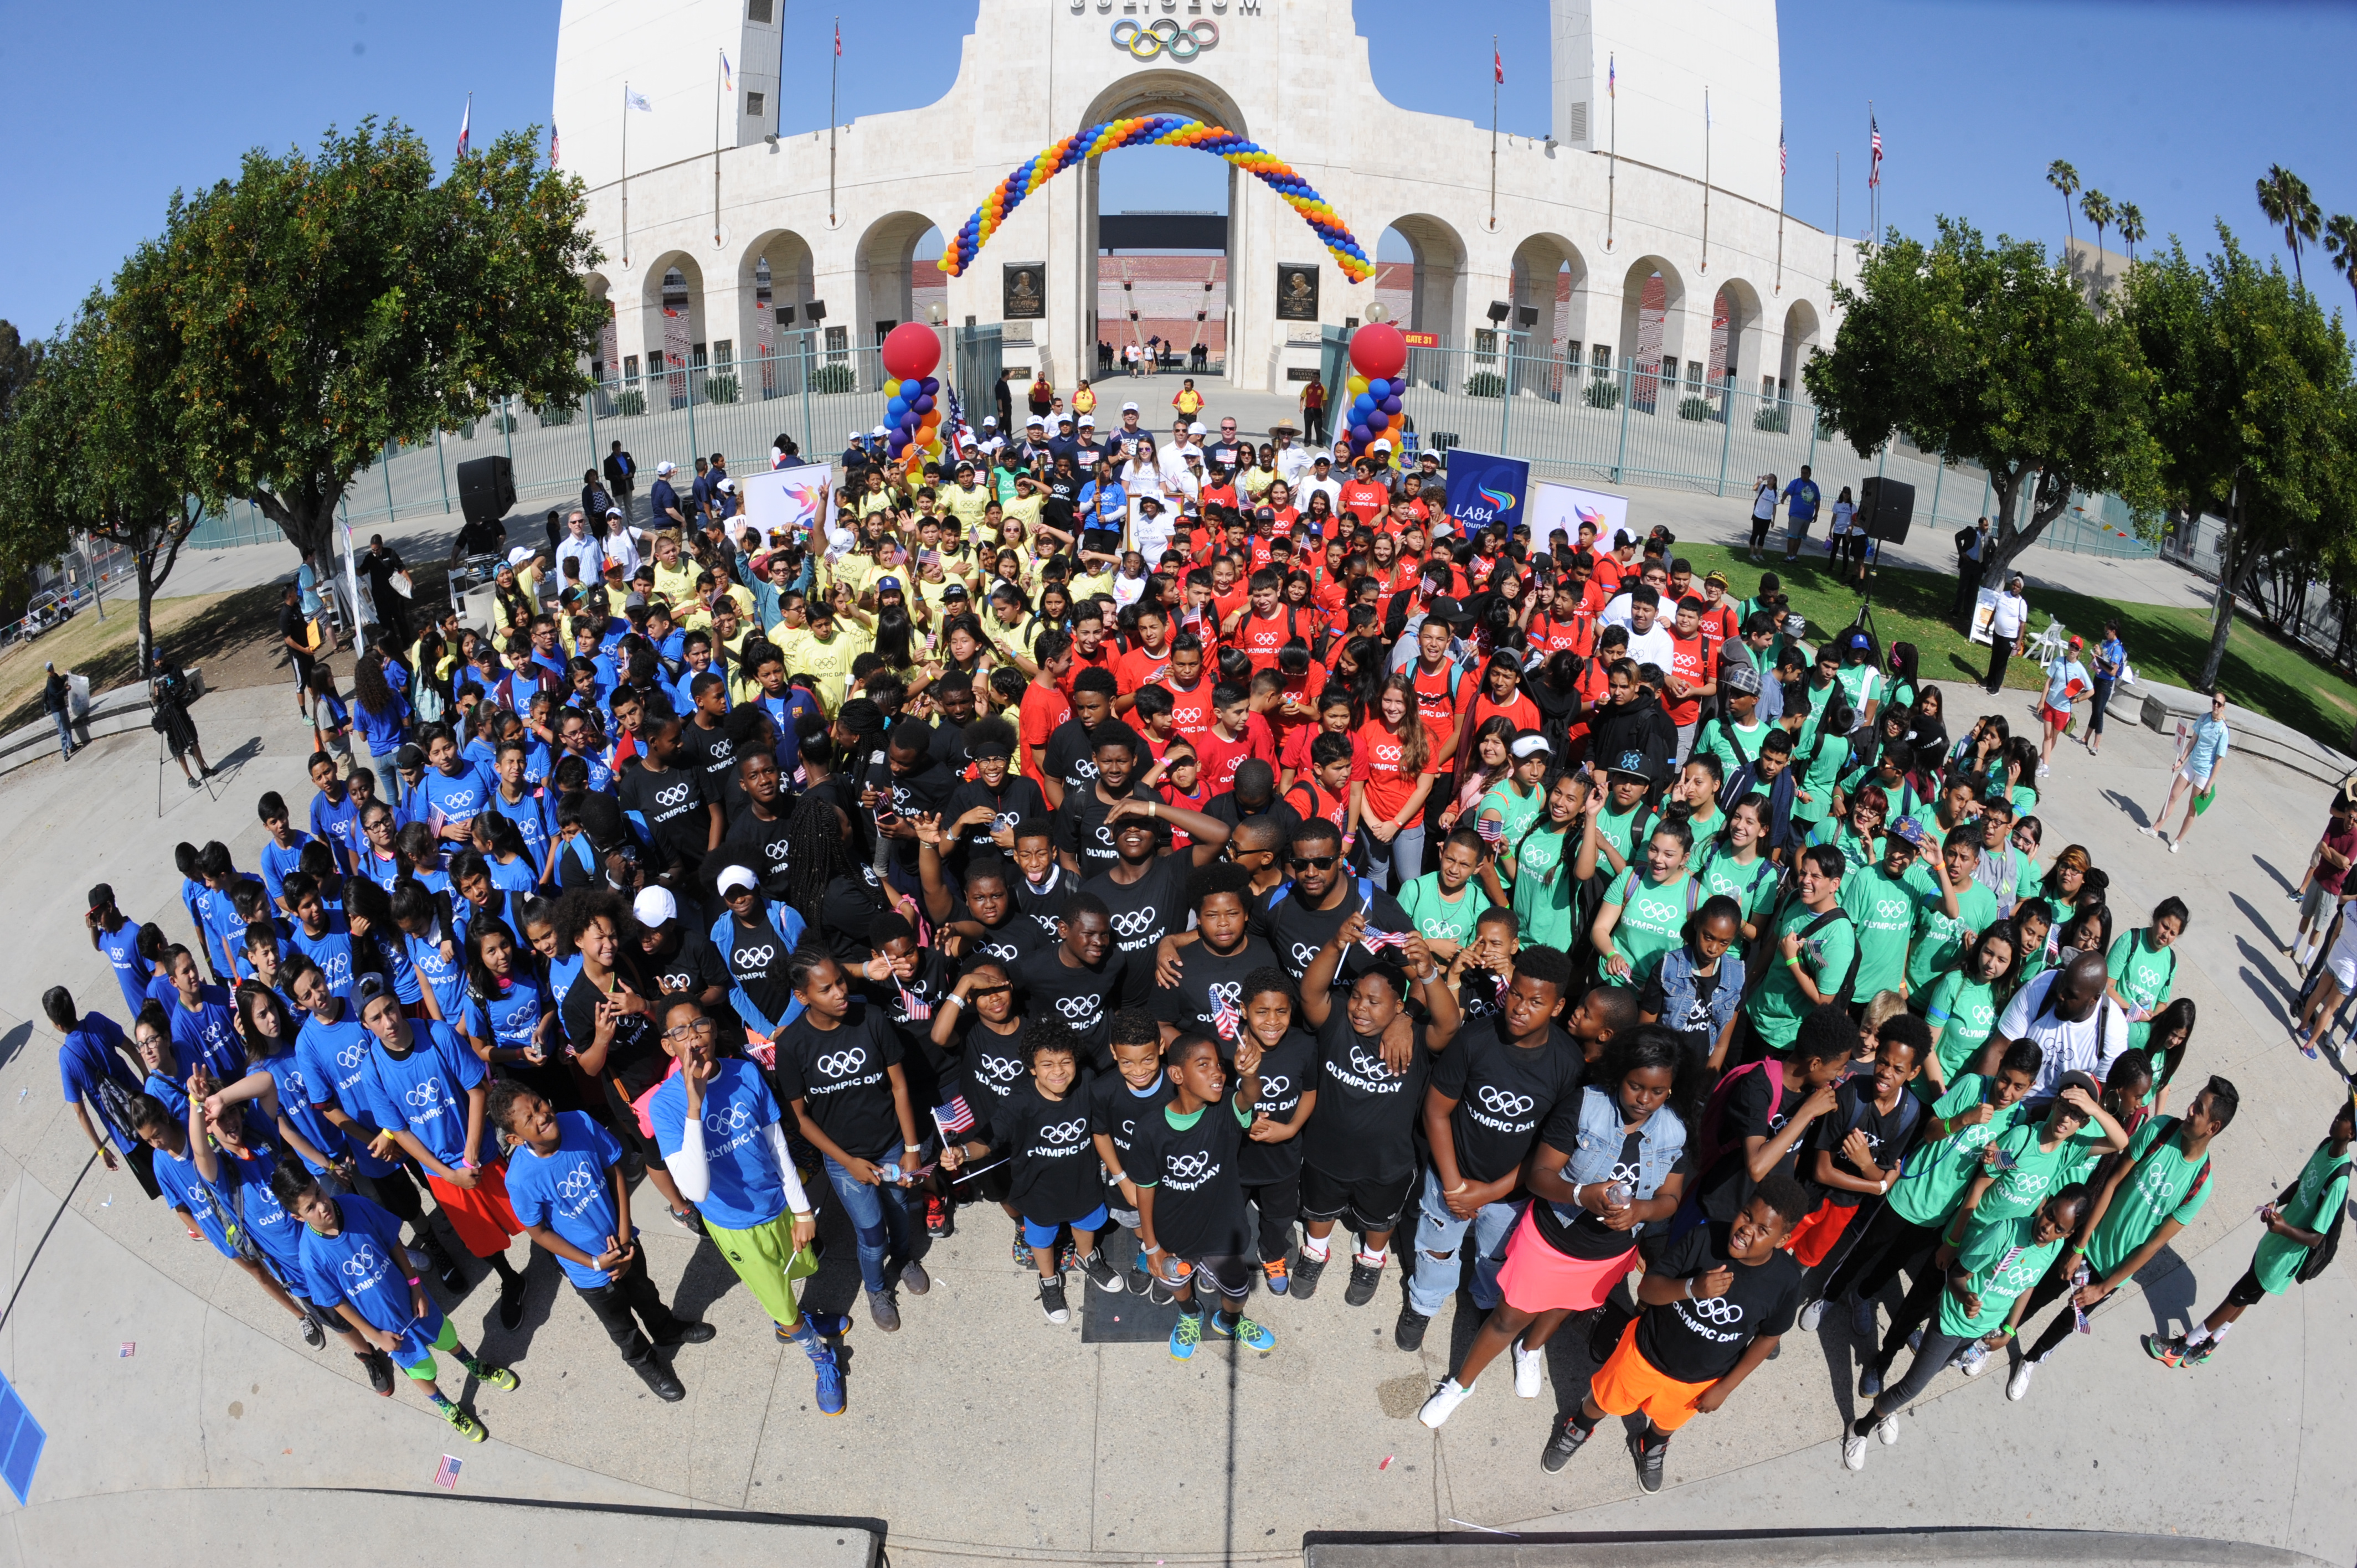 The opening ceremony for Olympic Day at the L.A. Coliseum